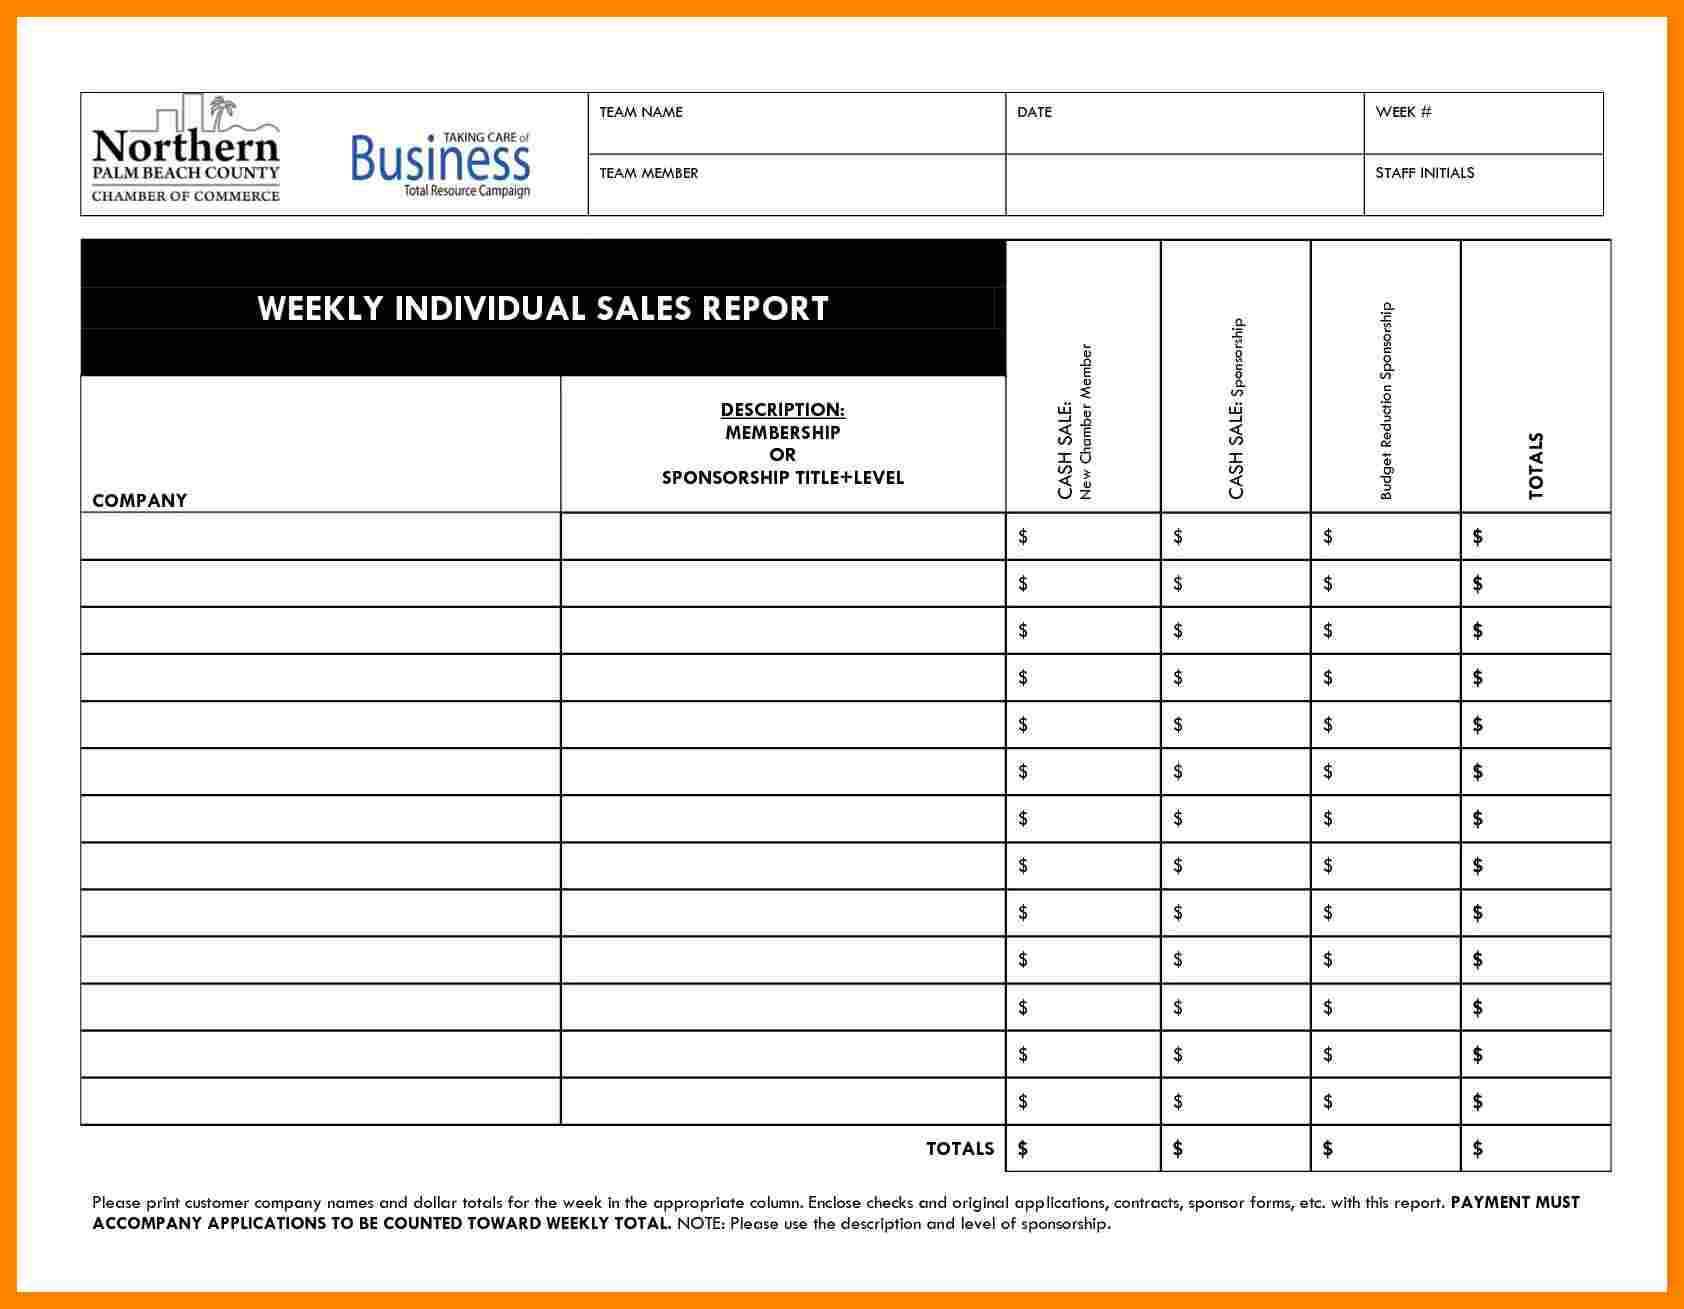 010 Daily Activity Report Template Free Download Salesll Pertaining To Daily Sales Call Report Template Free Download